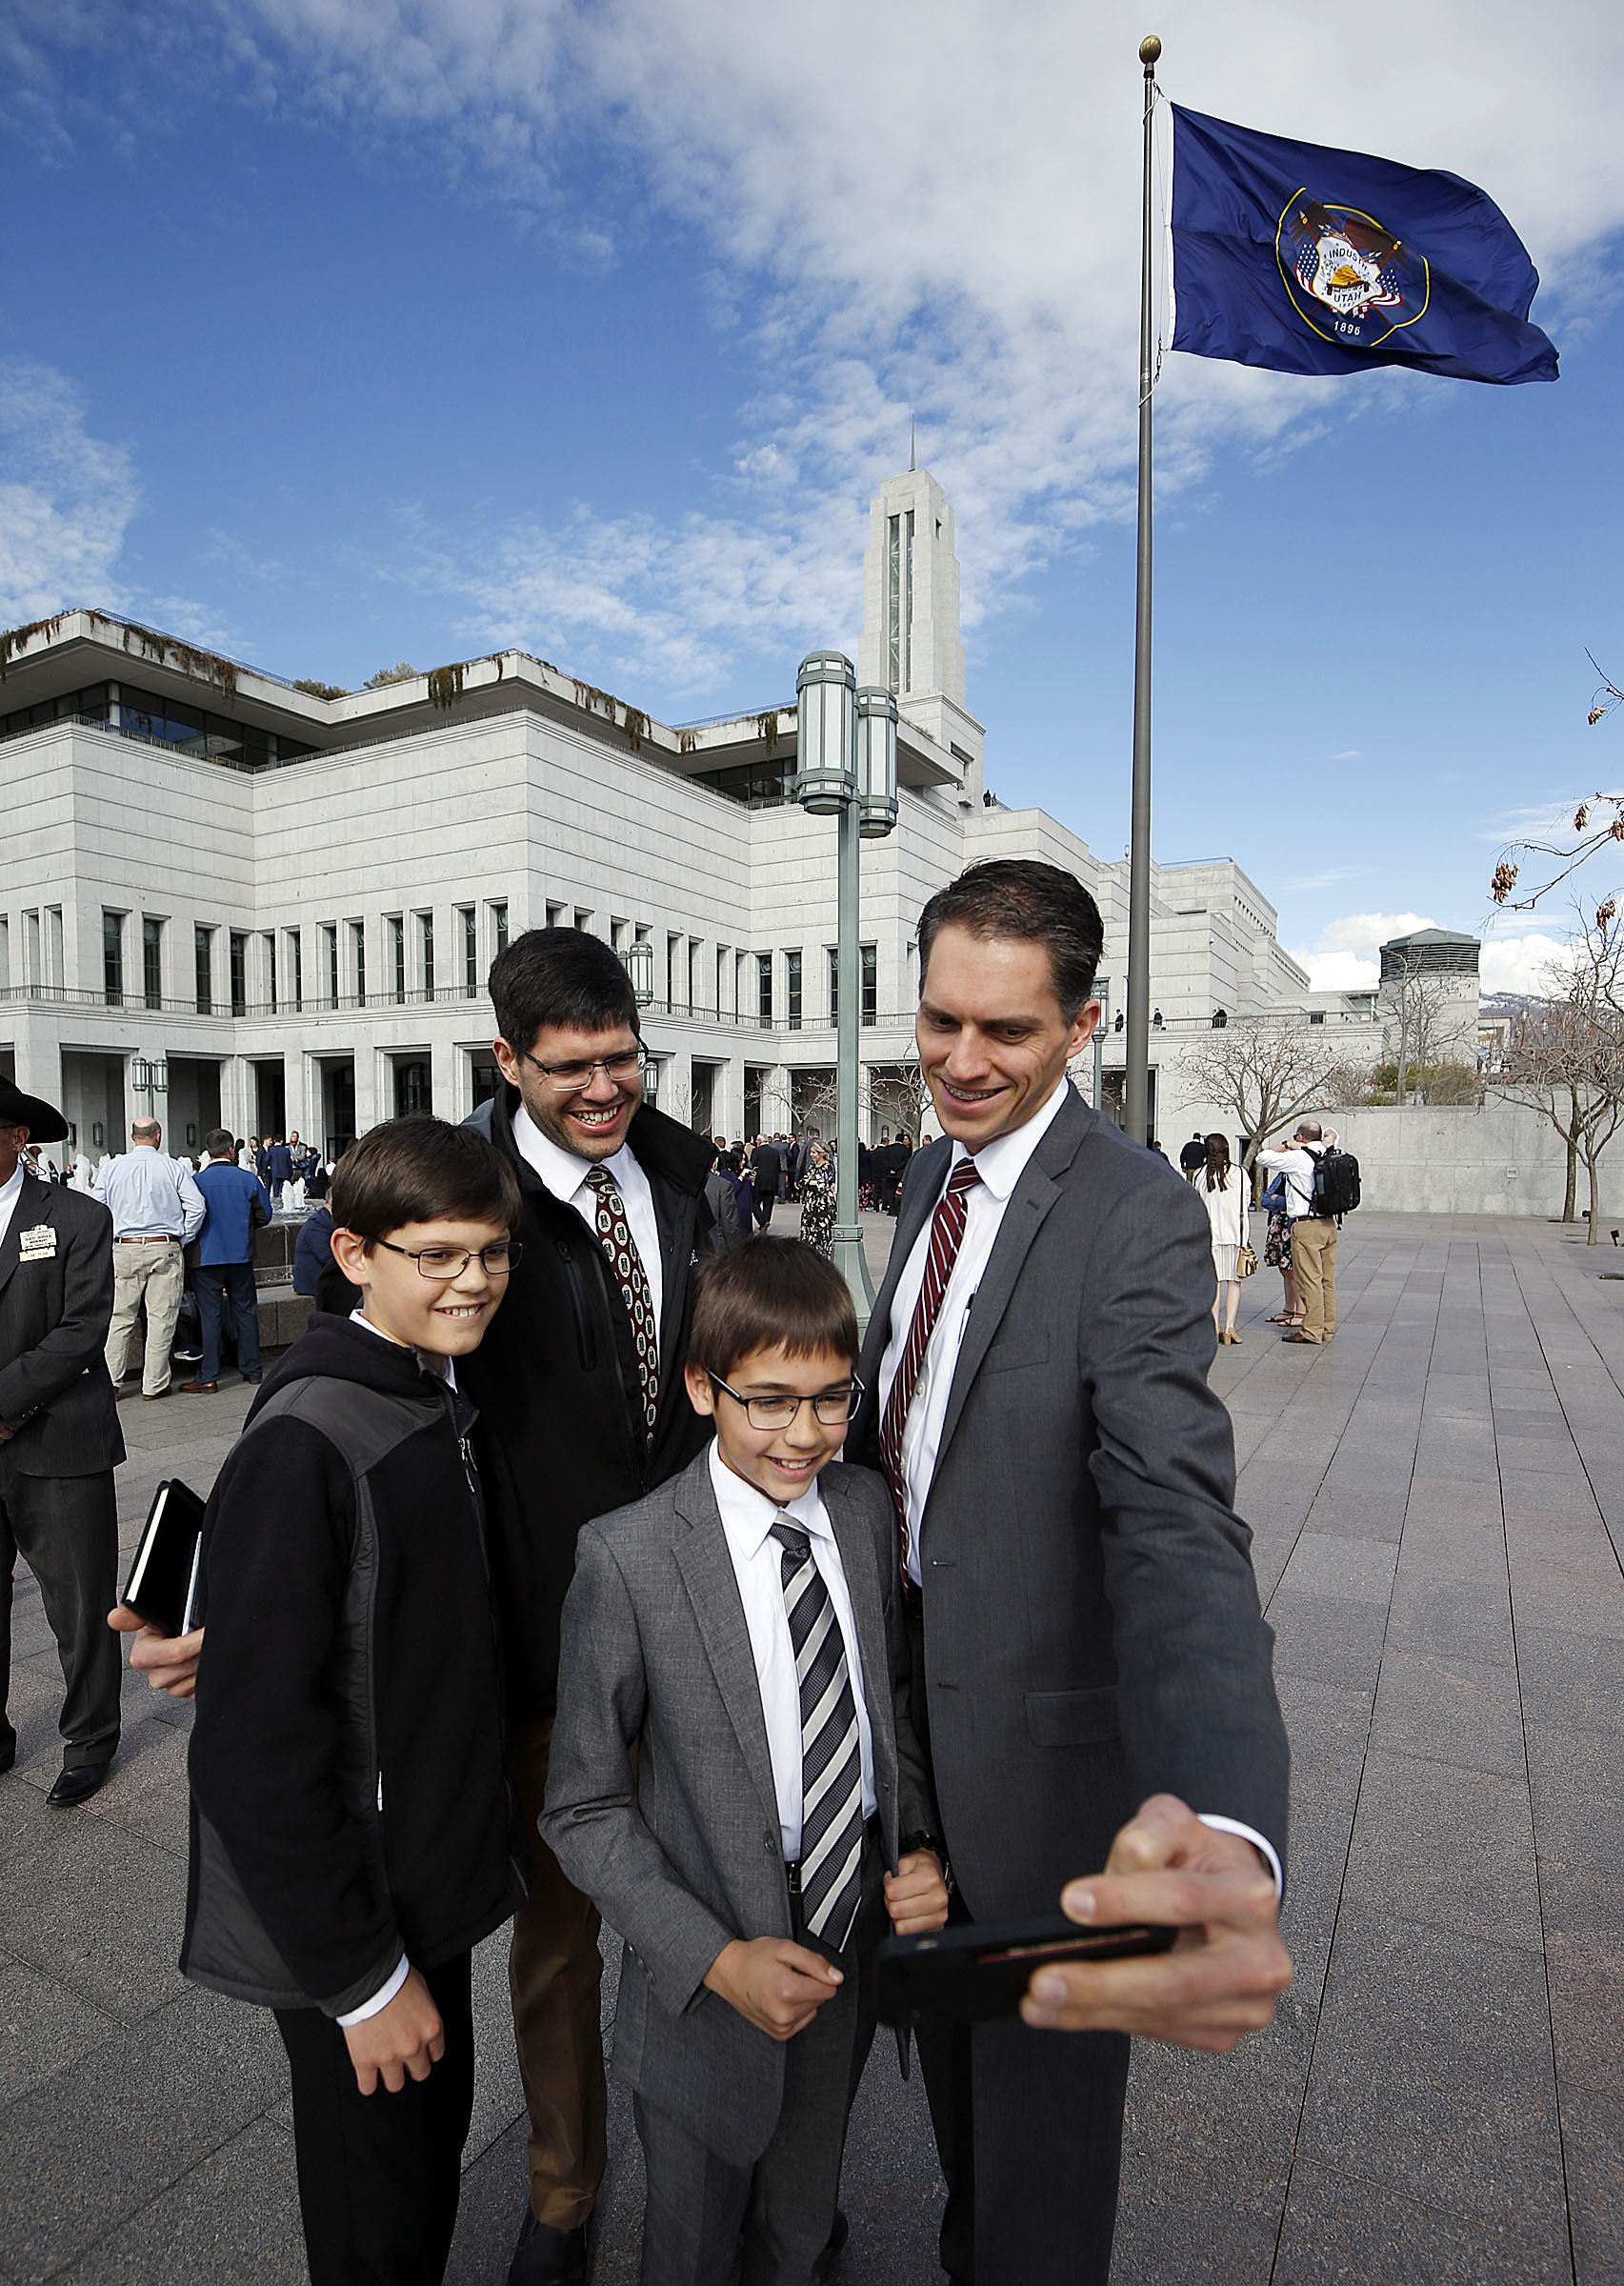 Steve Spigarelli, right, his son, Henry, his brother, David, and David's son, Daniel, take a photo before the 189th Annual General Conference of The Church of Jesus Christ of Latter-day Saints outside the Conference Center in Salt Lake City on Saturday, April 6, 2019.